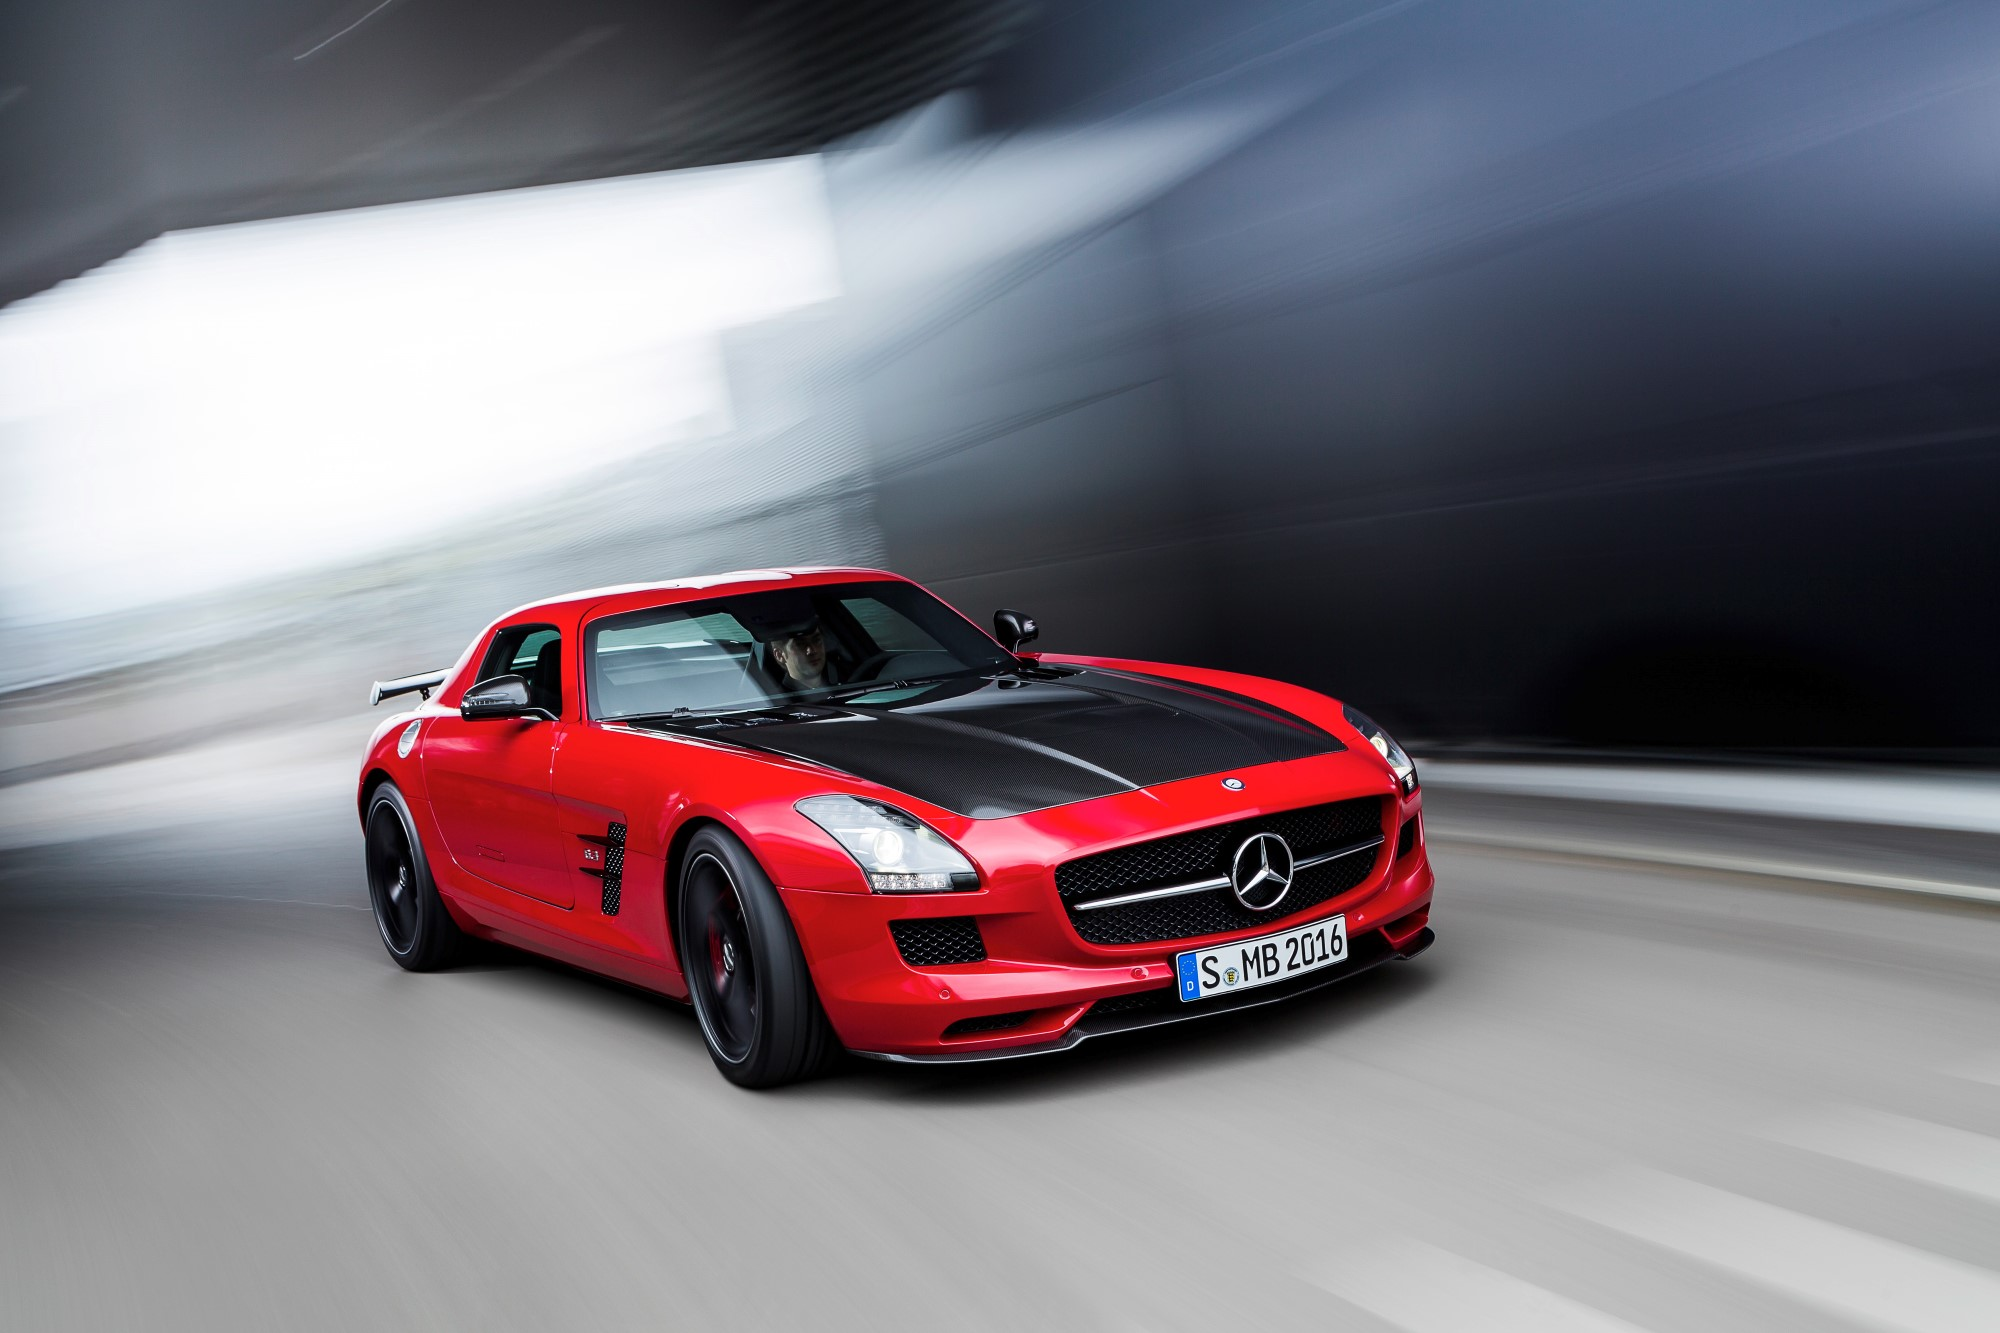 Mercedes-Benz Sls Amg Gt Final Edition #21